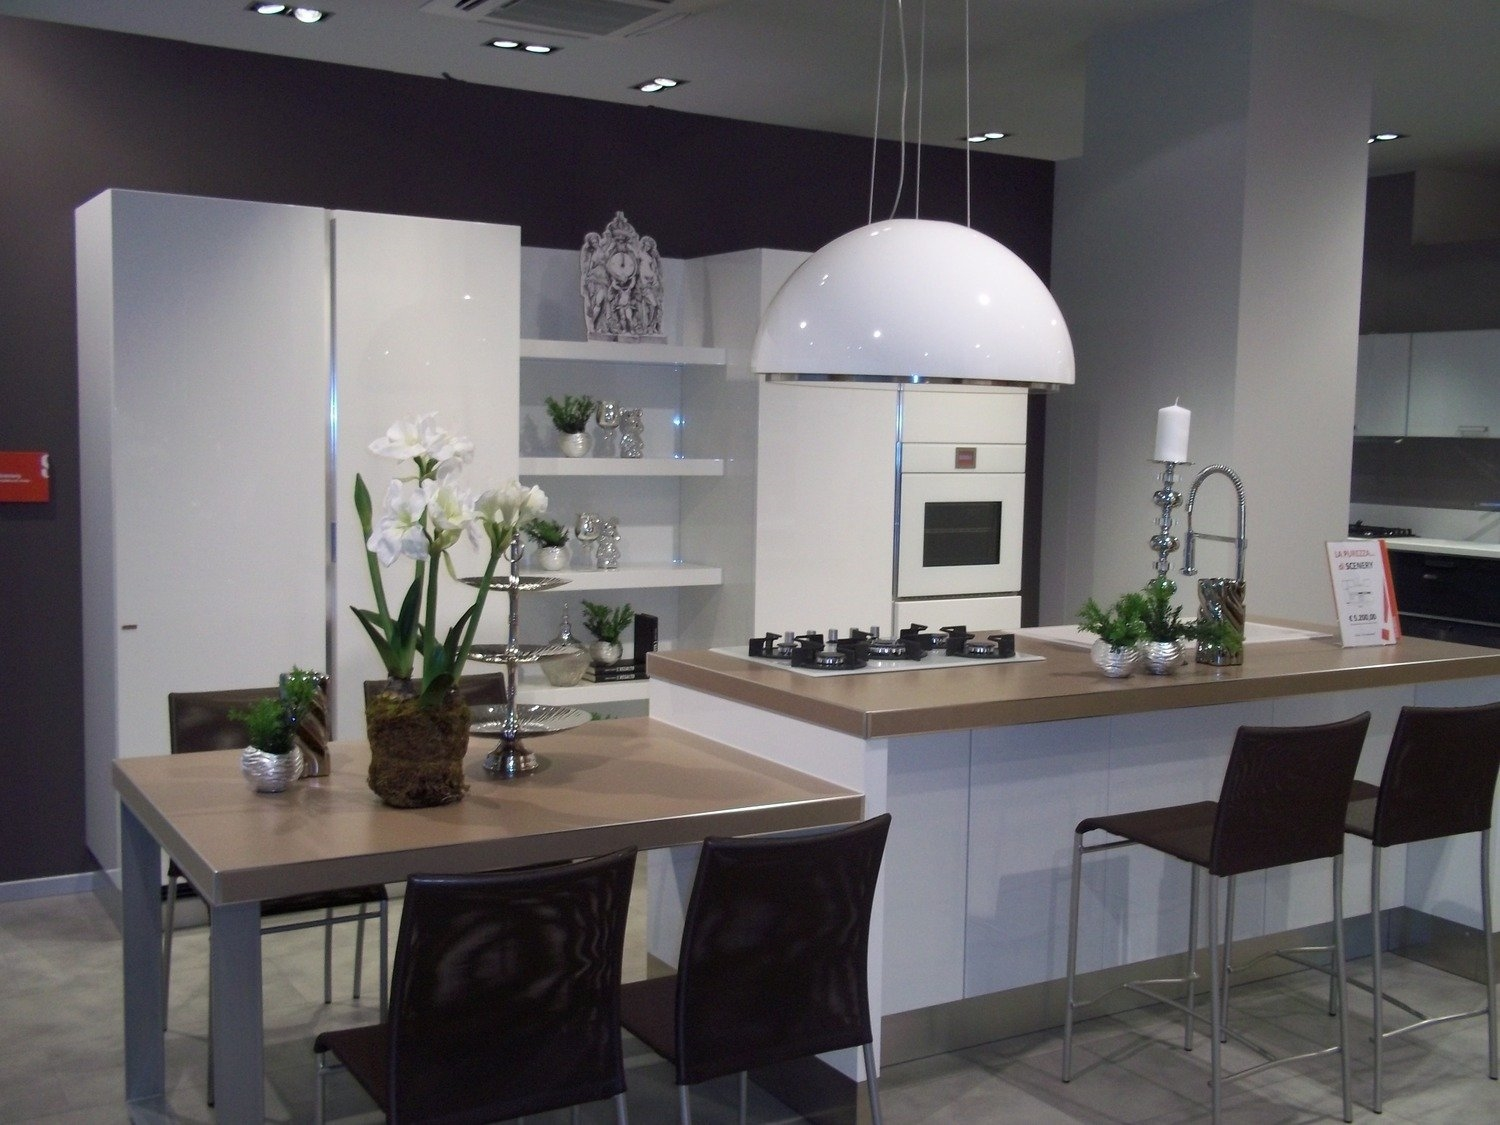 Beautiful Cucina Con Isola Scavolini Pictures - Embercreative.us - embercreat...